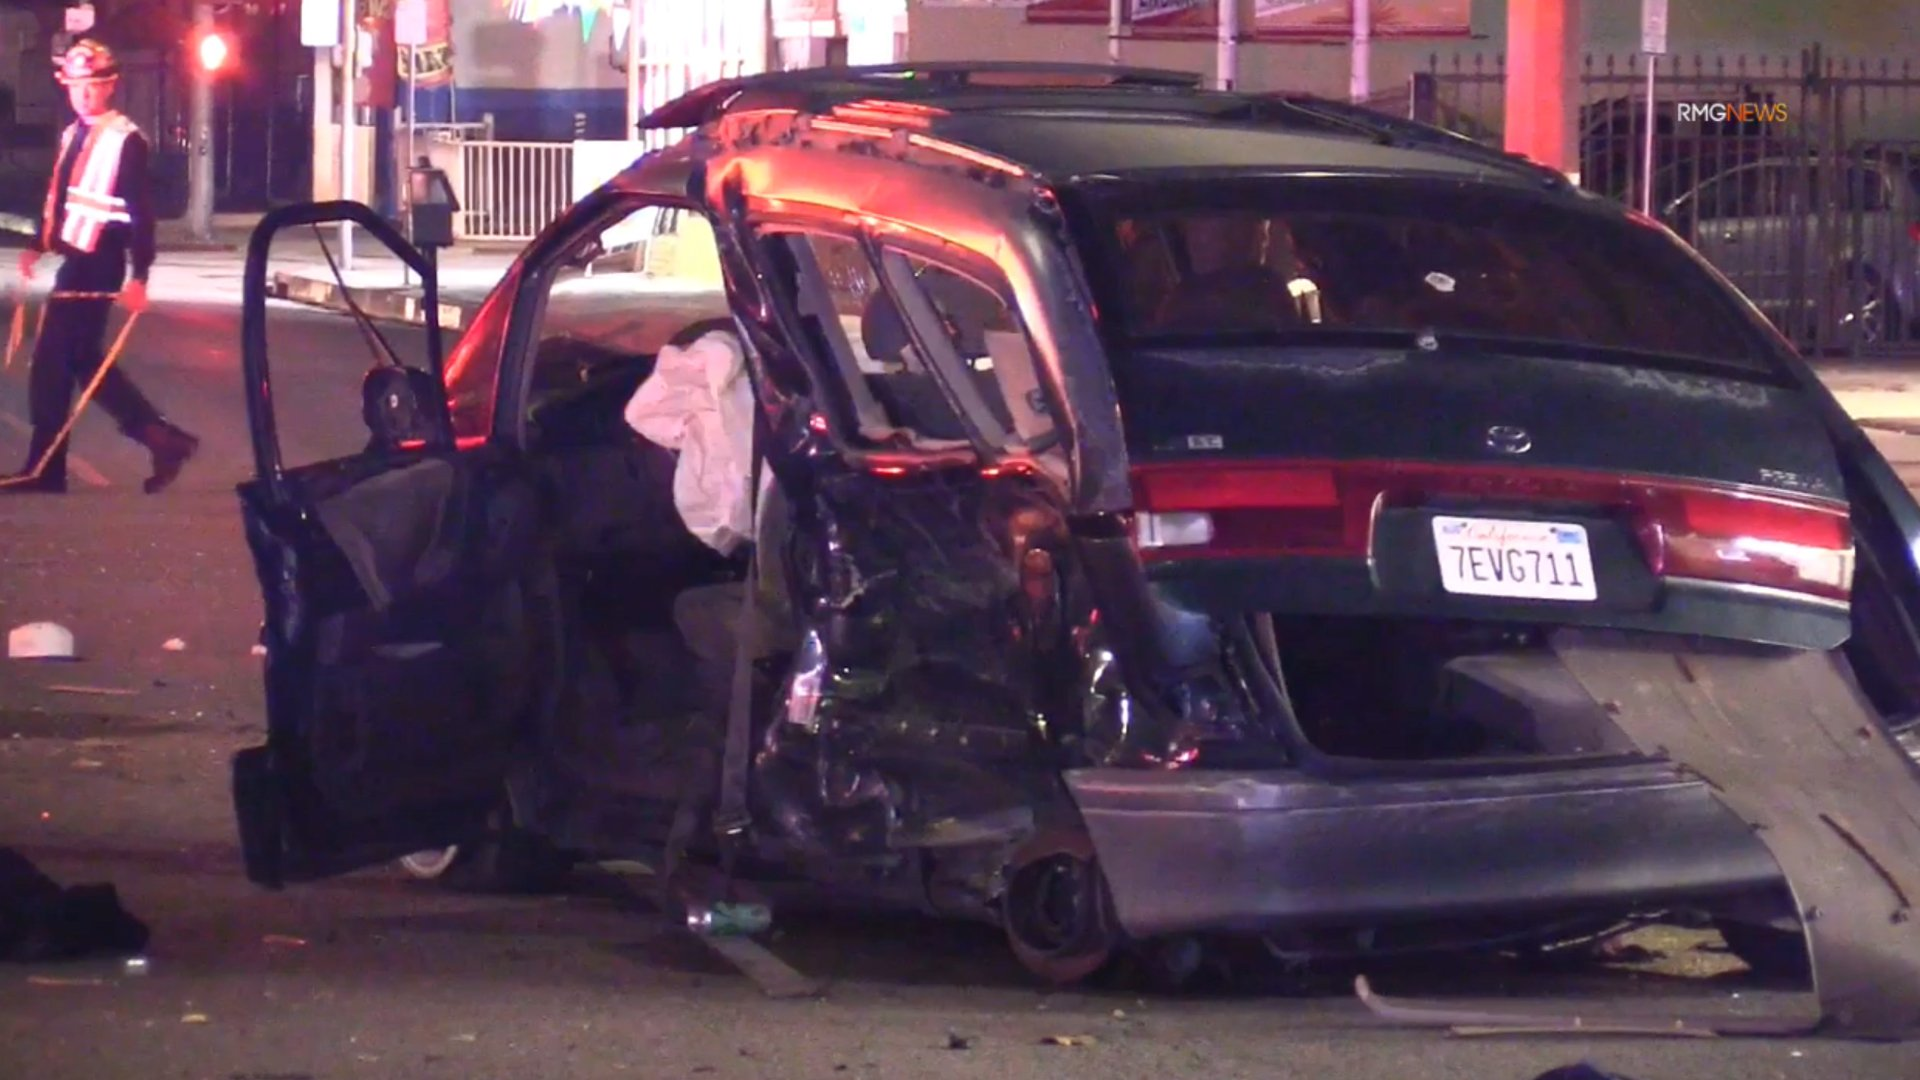 Two people, including a 12-year-old boy, were hurt in a hit-and-run collision in El Monte on Jan. 18, 2020. (Credit: RMG News)